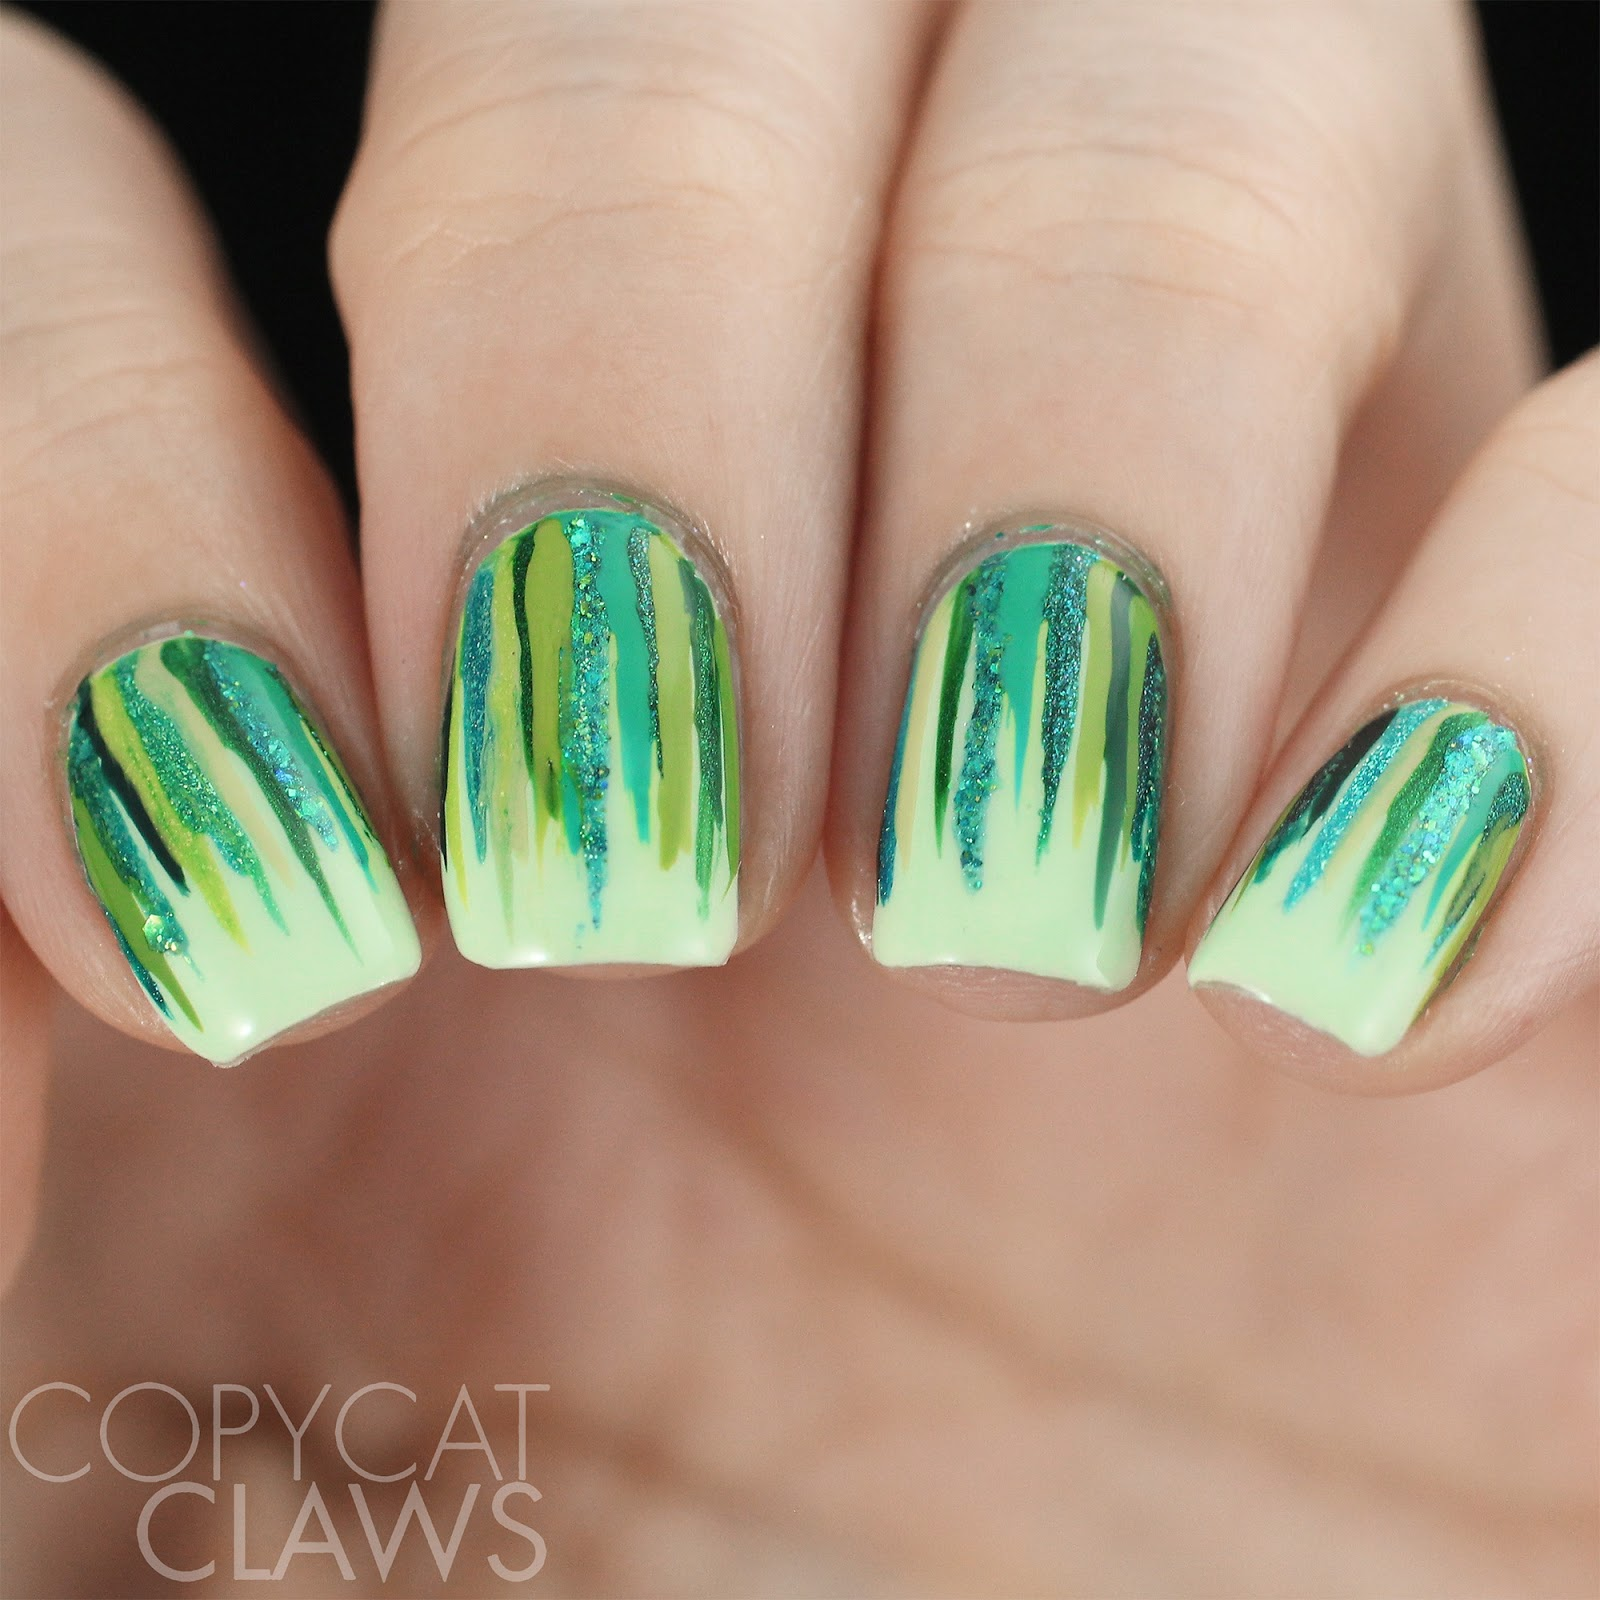 Copycat Claws: 26 Great Nail Art Ideas - Green Freestyle